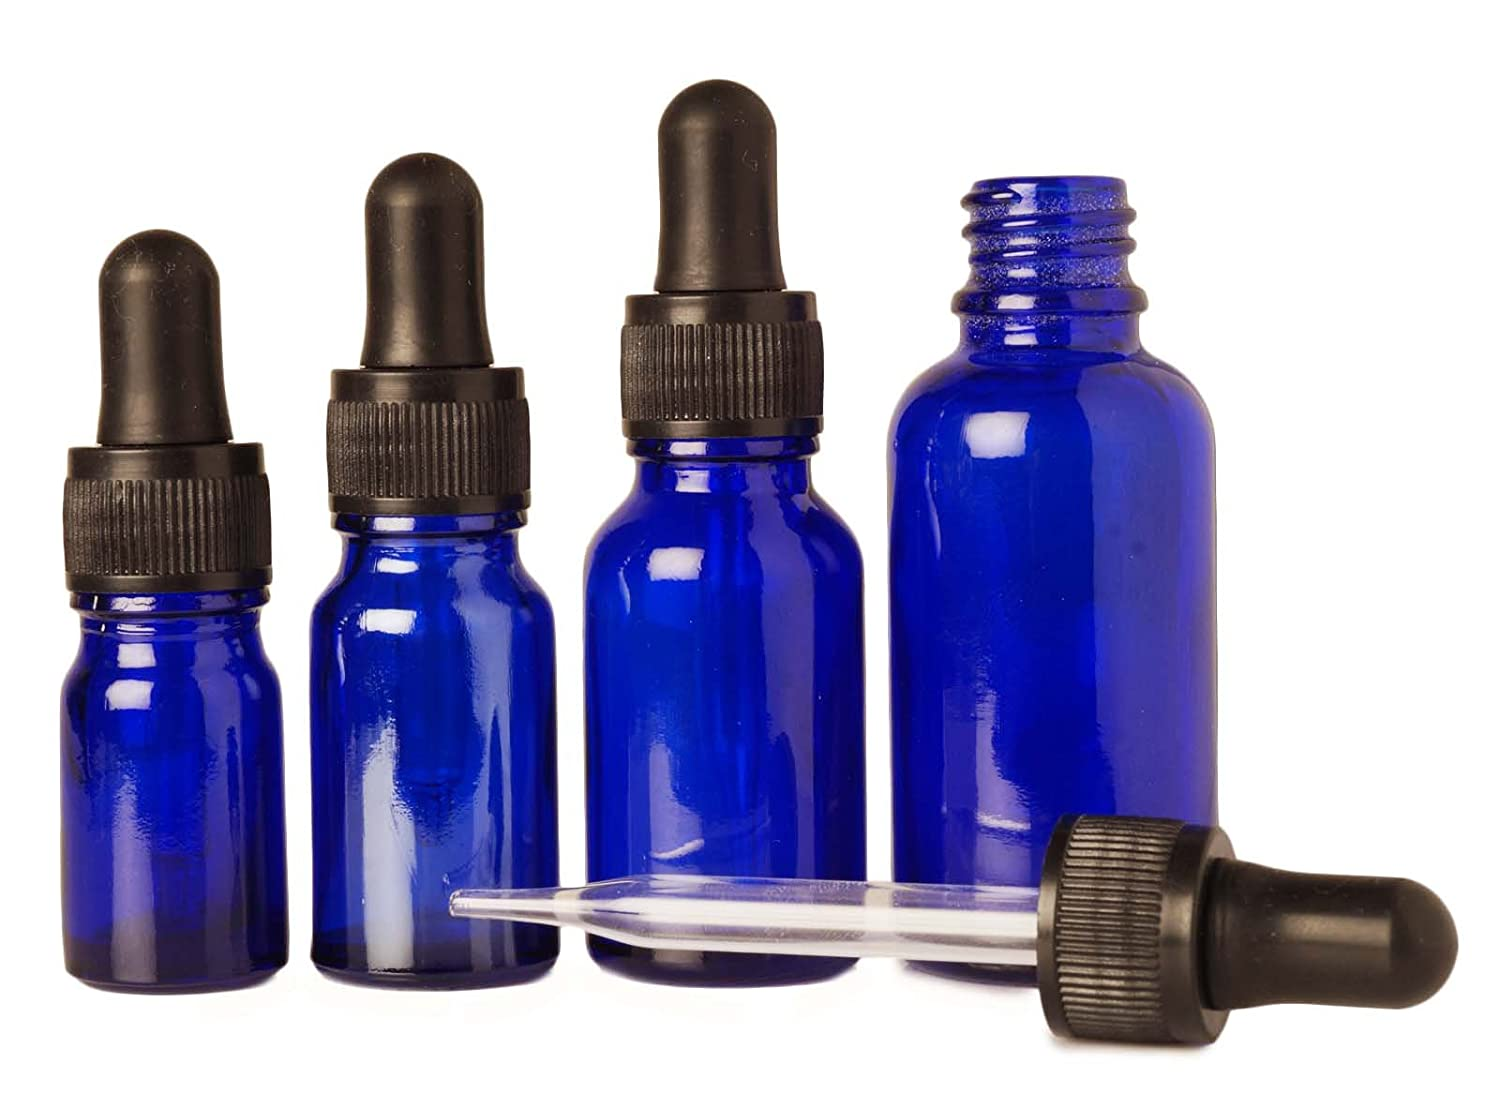 15 ml Empty Cobalt Blue Glass Eye Dropper Bottle Aromatherapy Oils Wholesale Bottles Boston Round Refillable Serum Vials Lot Of 6 Pipette Bottles MT Bottles & Jars